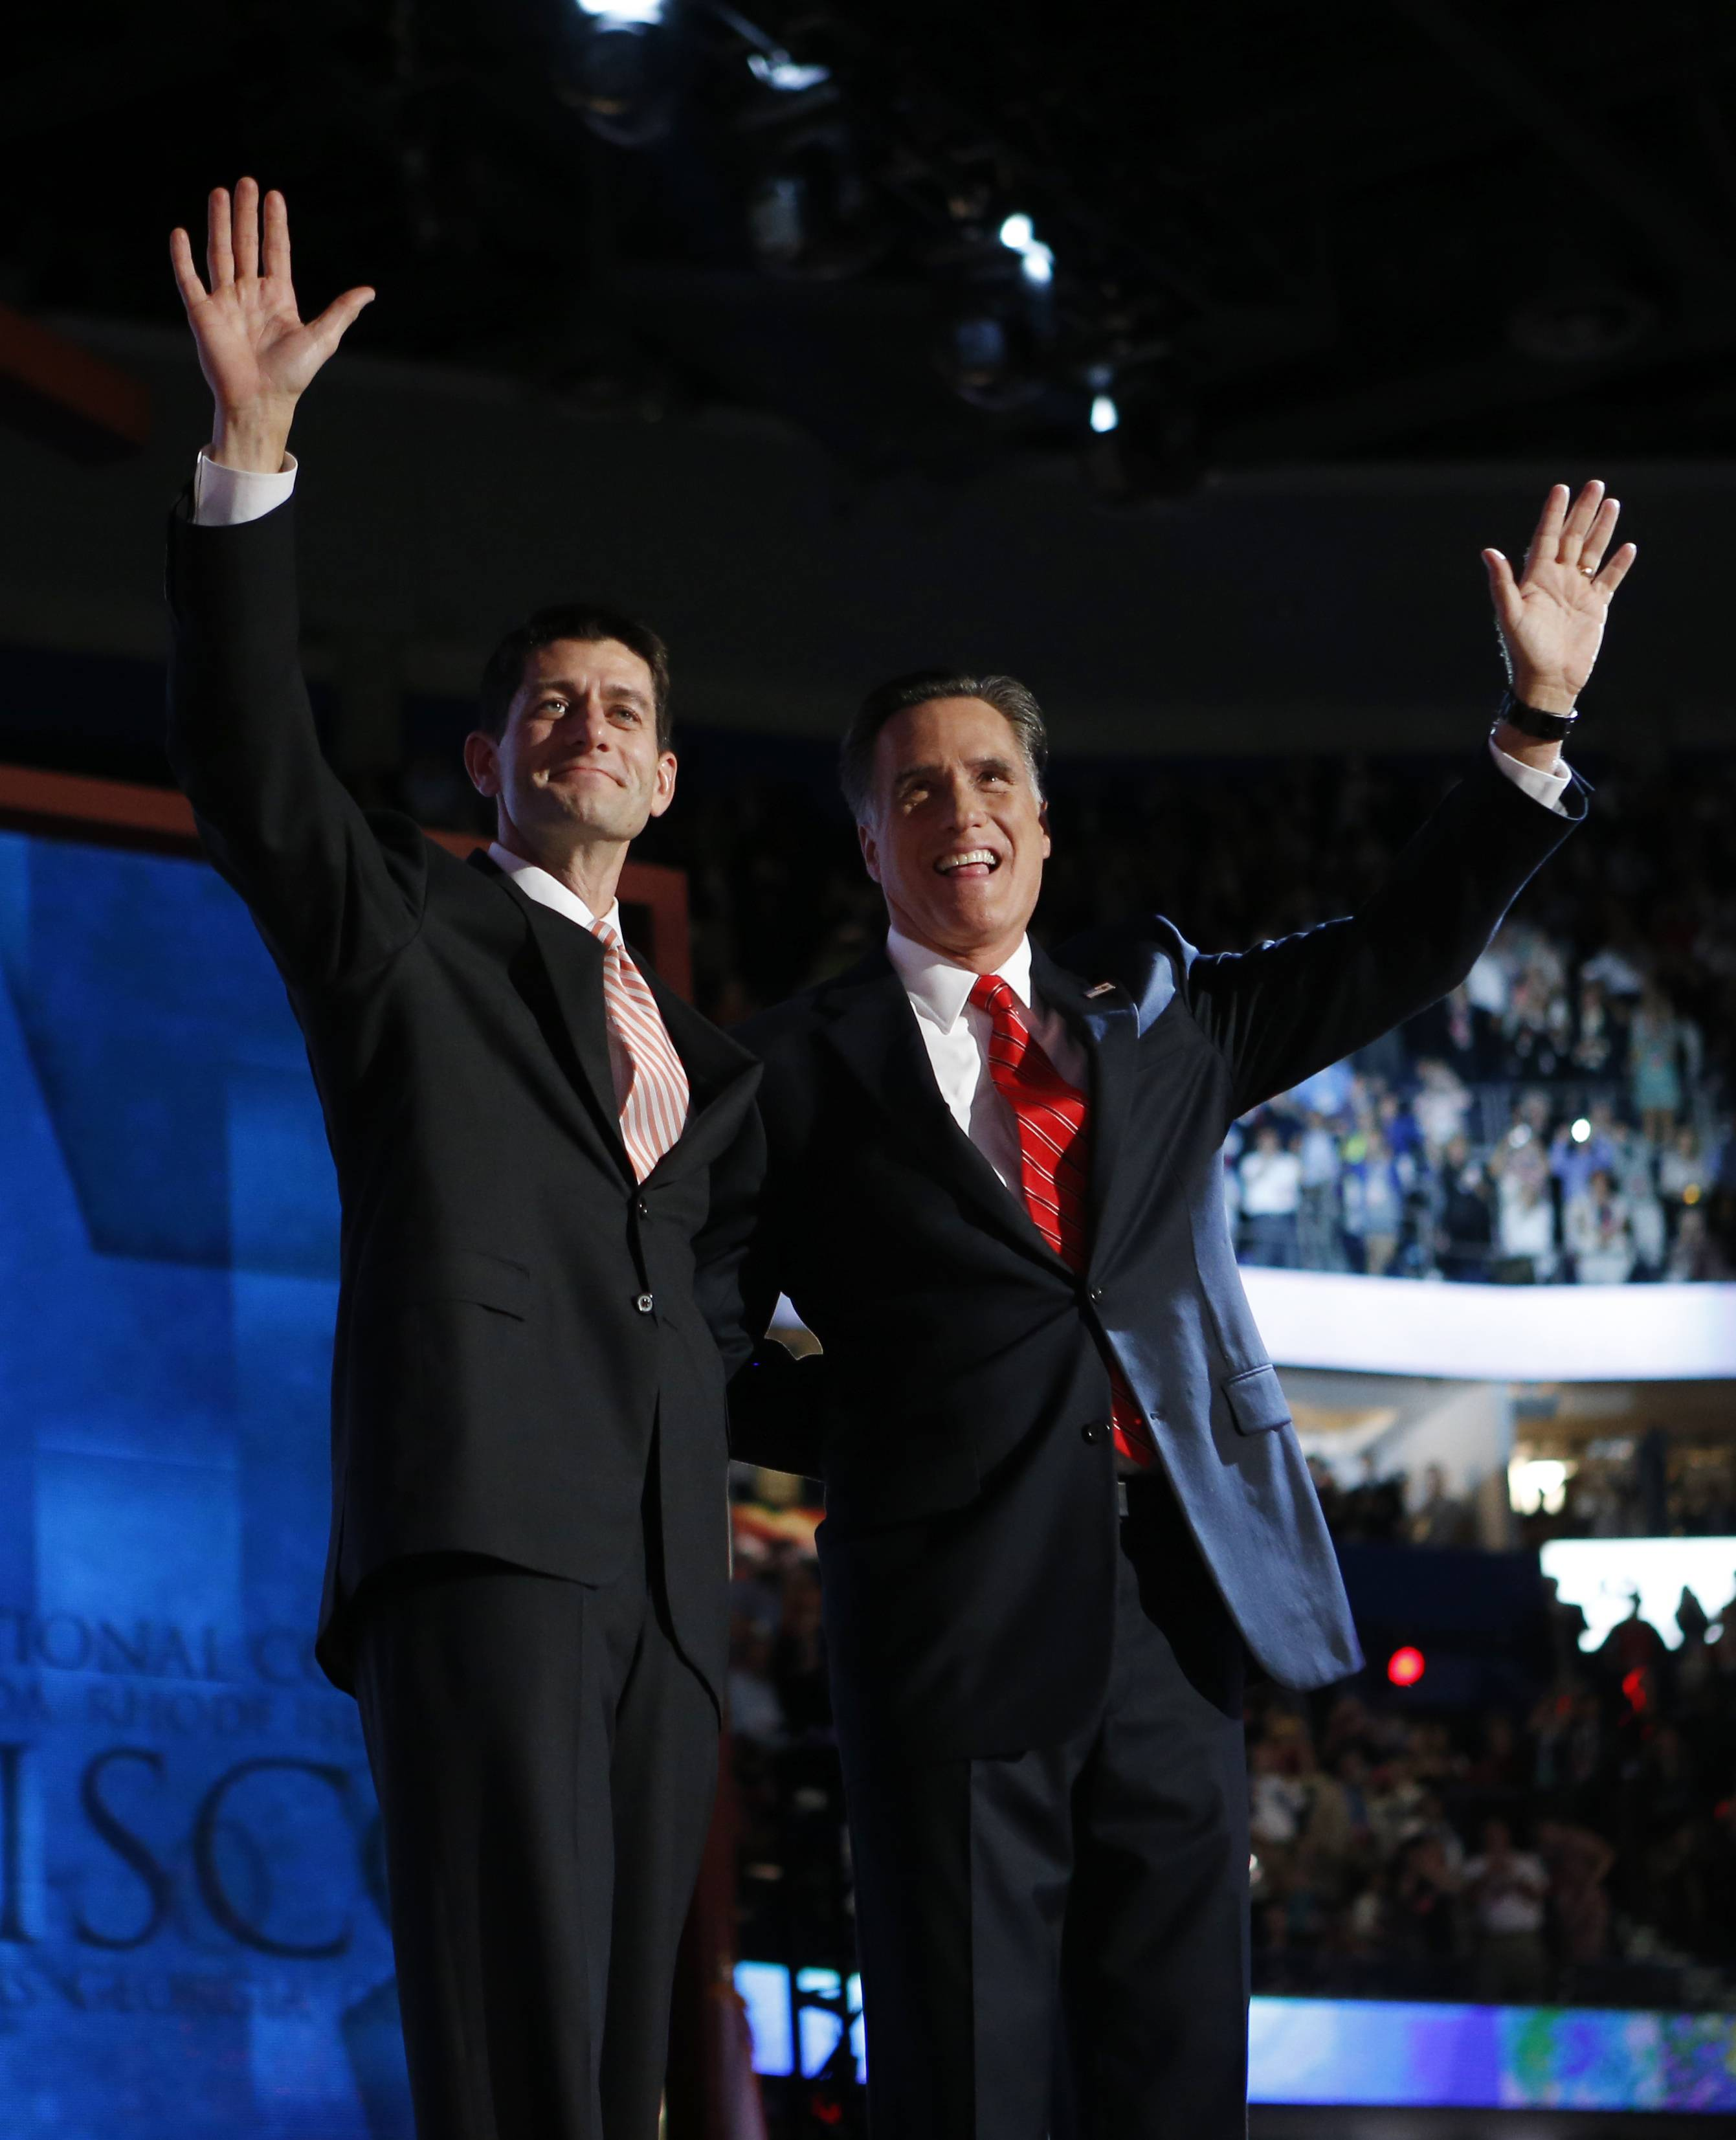 Republican presidential nominee Mitt Romney, right, joined by Republican vice presidential nominee, Rep. Paul Ryan, waves to delegates Thursday after speaking at the Republican National Convention in Tampa, Fla.